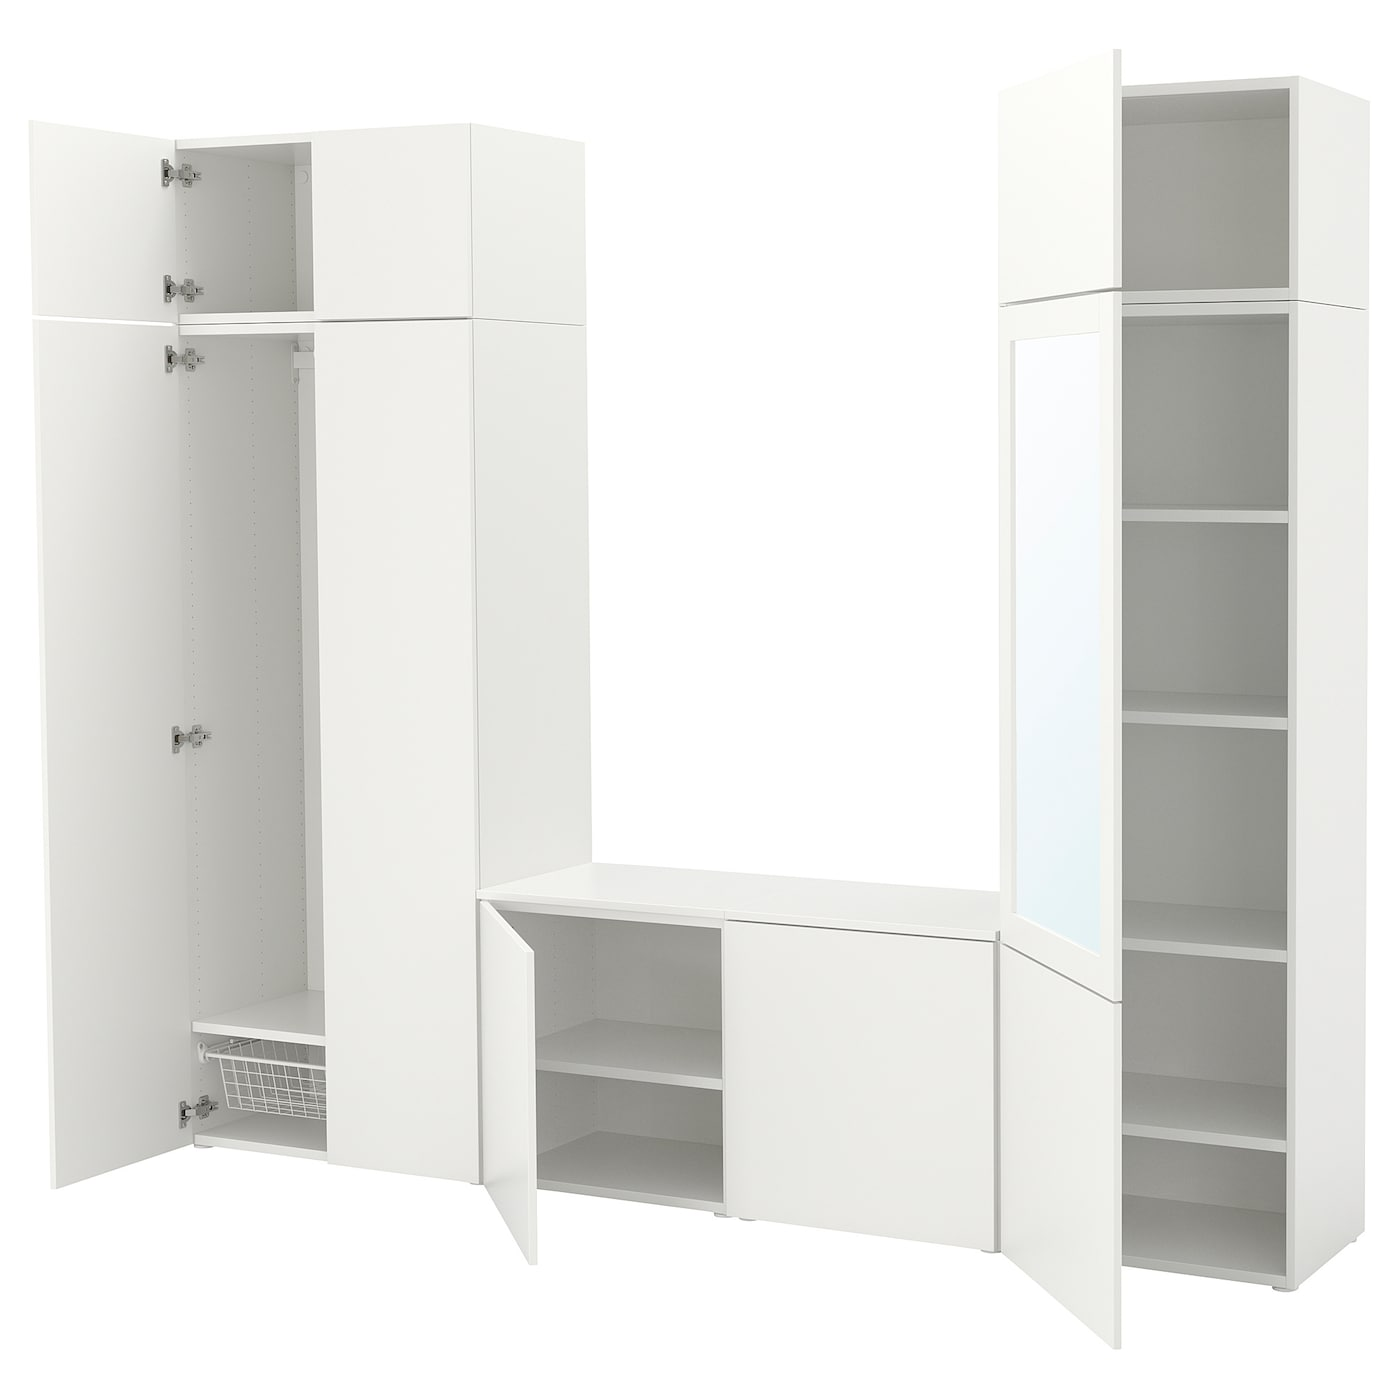 IKEA PLATSA wardrobe Adjustable feet make it possible to compensate any irregularities in the floor.